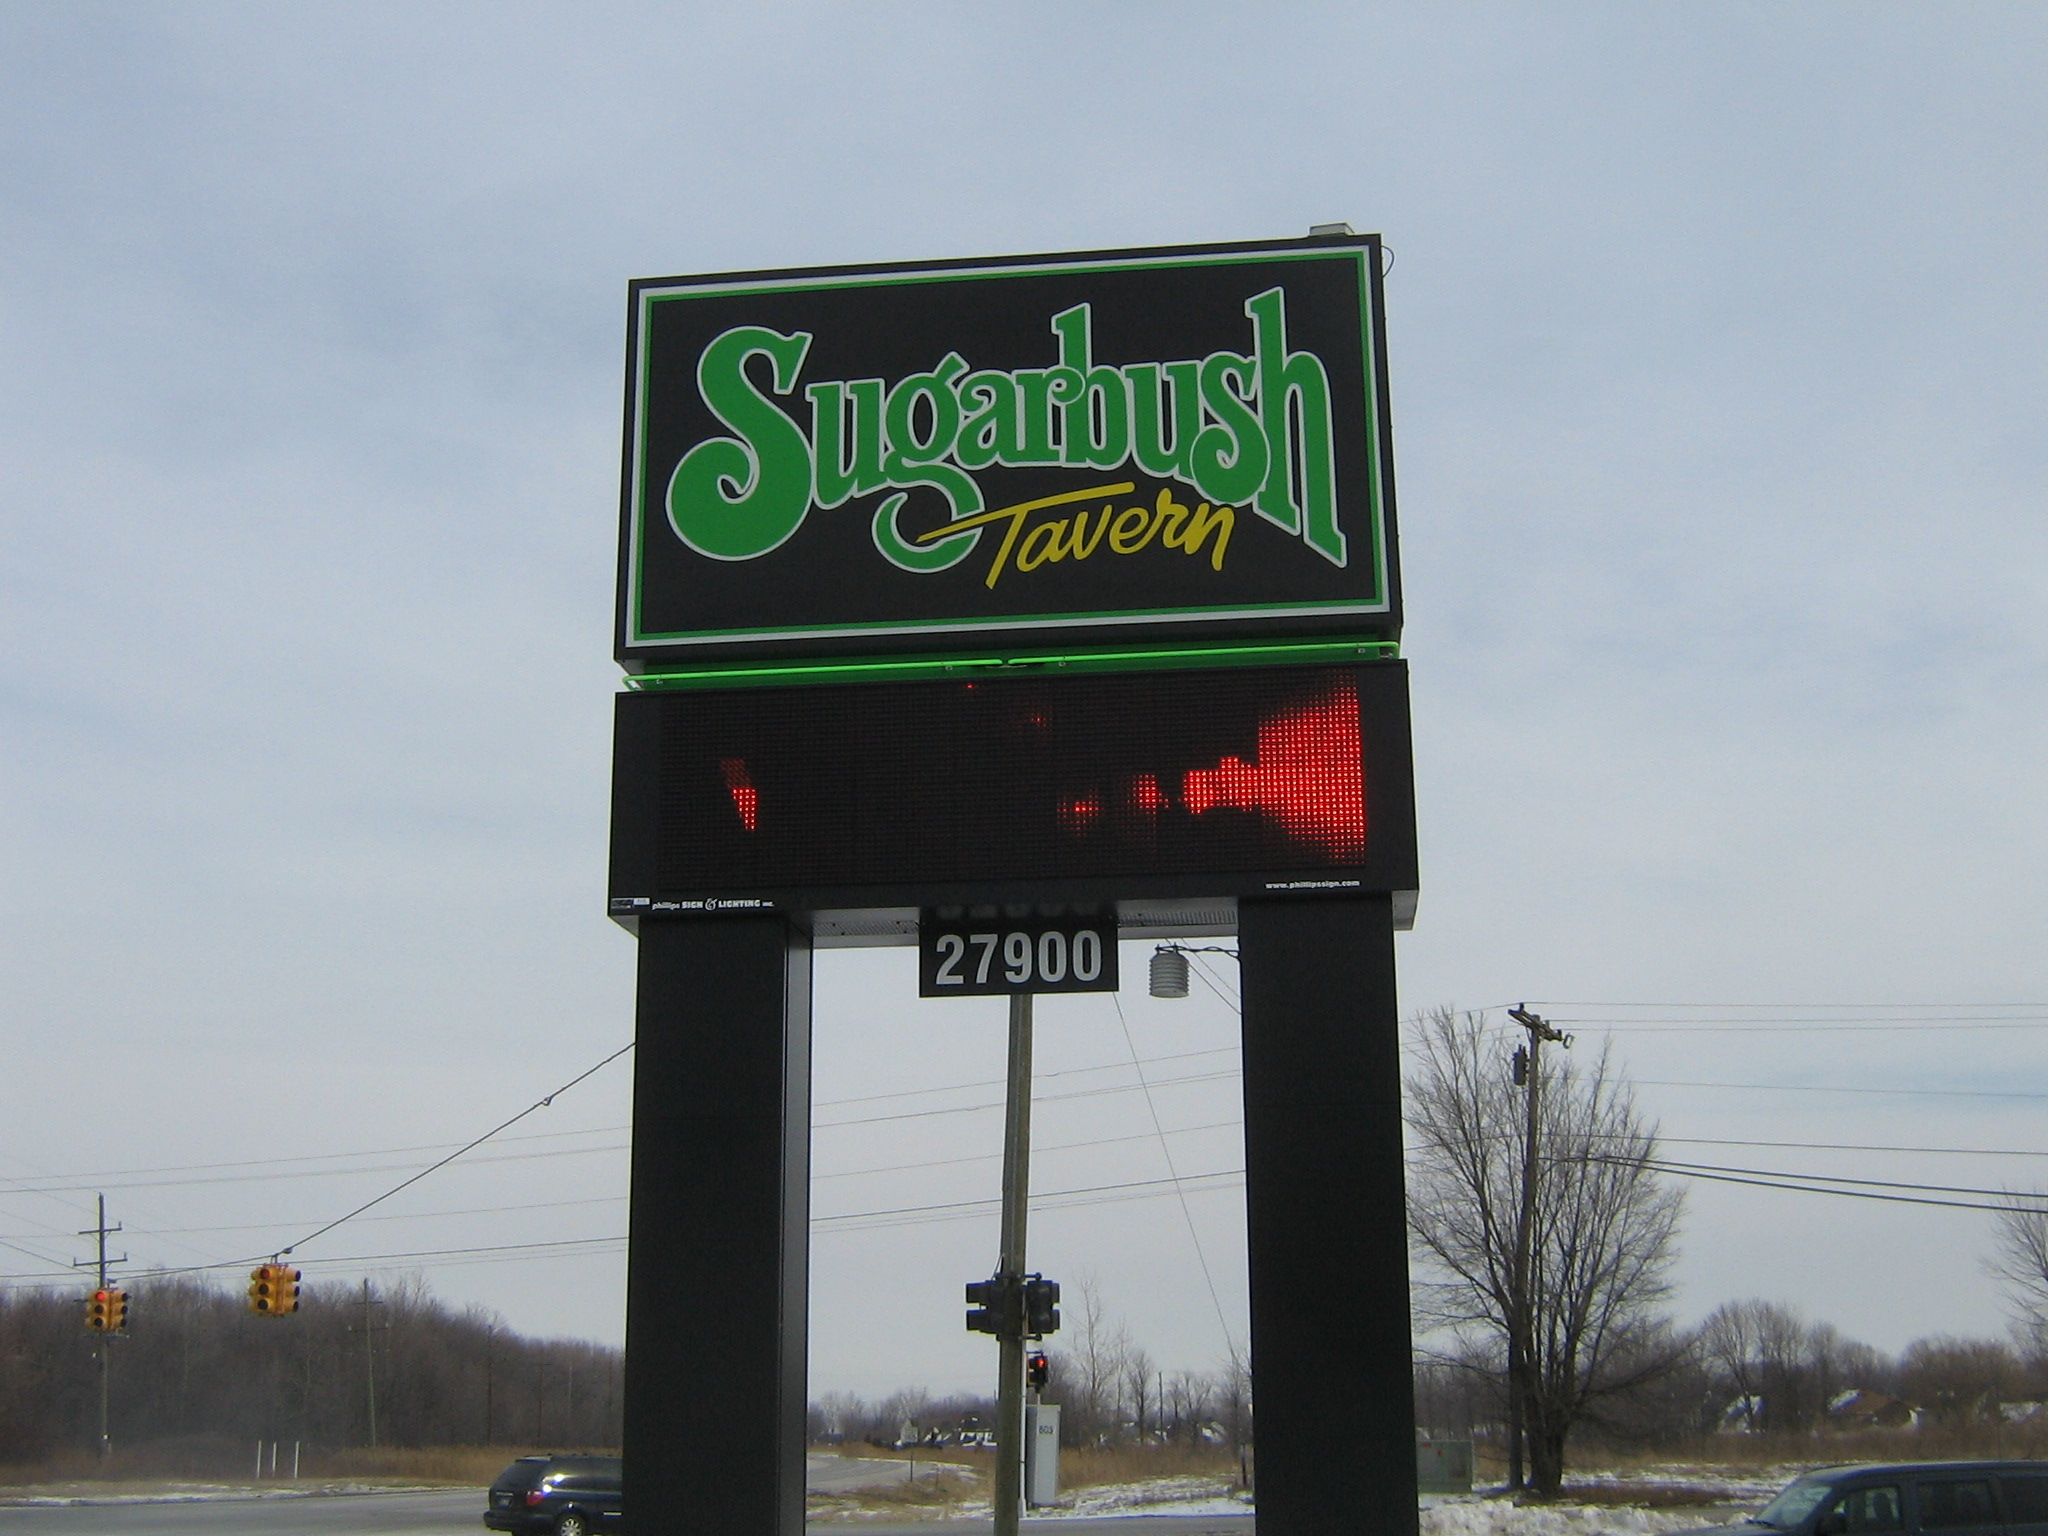 Sugarbush Tavern- Electronic Display